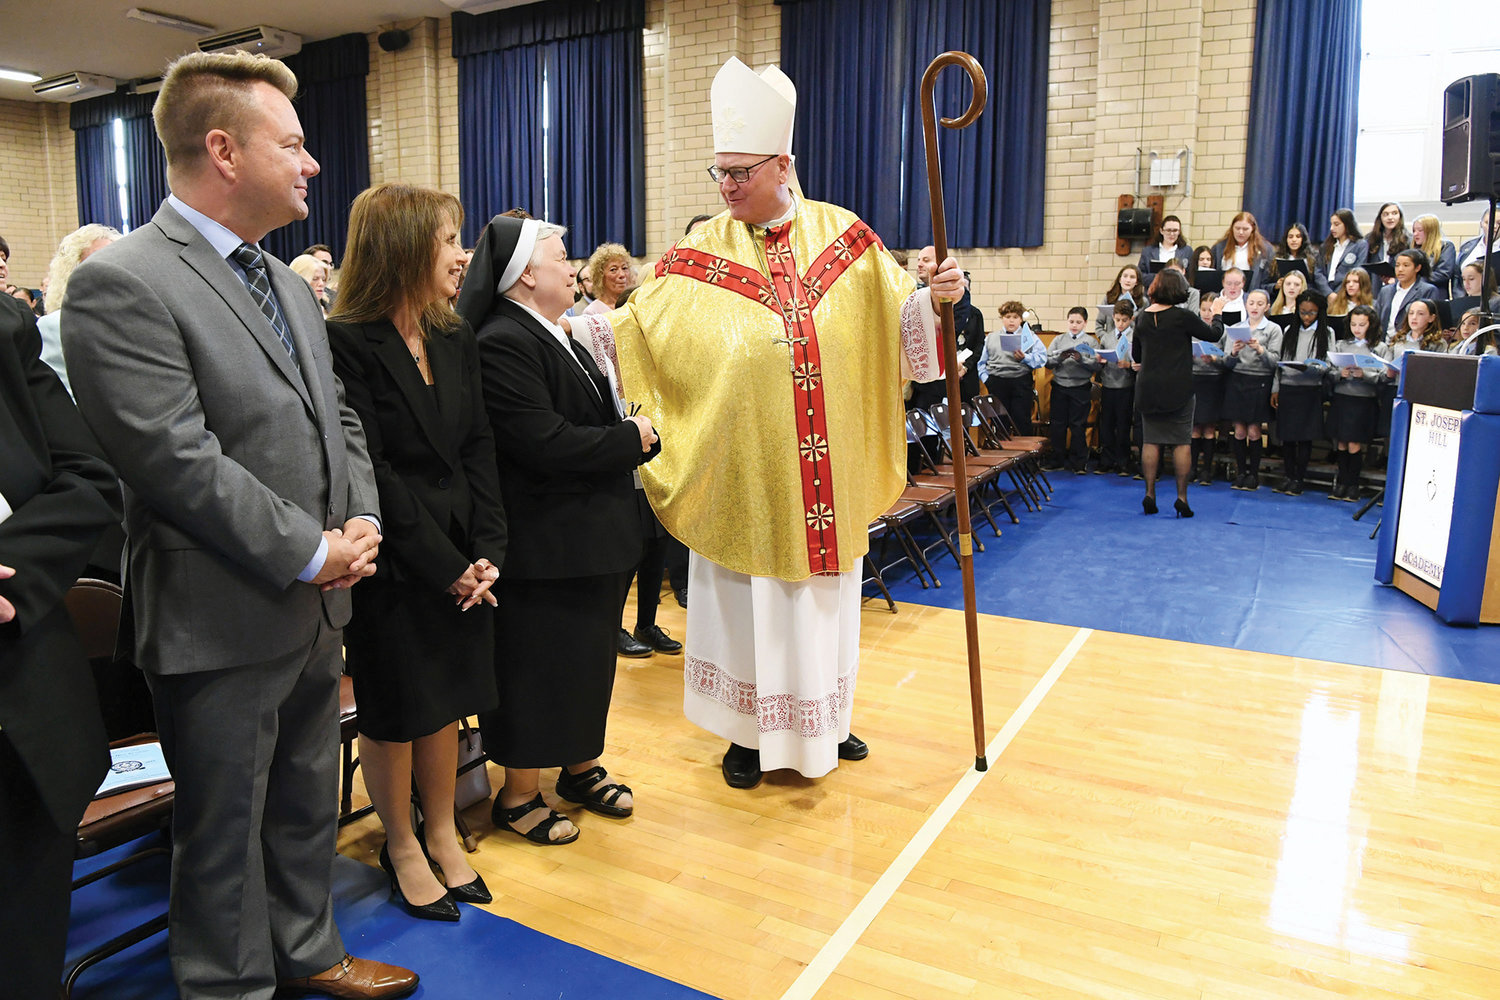 Cardinal Dolan greeted Sister Mary Coffelt, F.D.C., provincial superior and school president, as he processed to the altar. To the left are Lawrence Hansen, principal of the elementary school and Maria Molluzzo, high school principal.